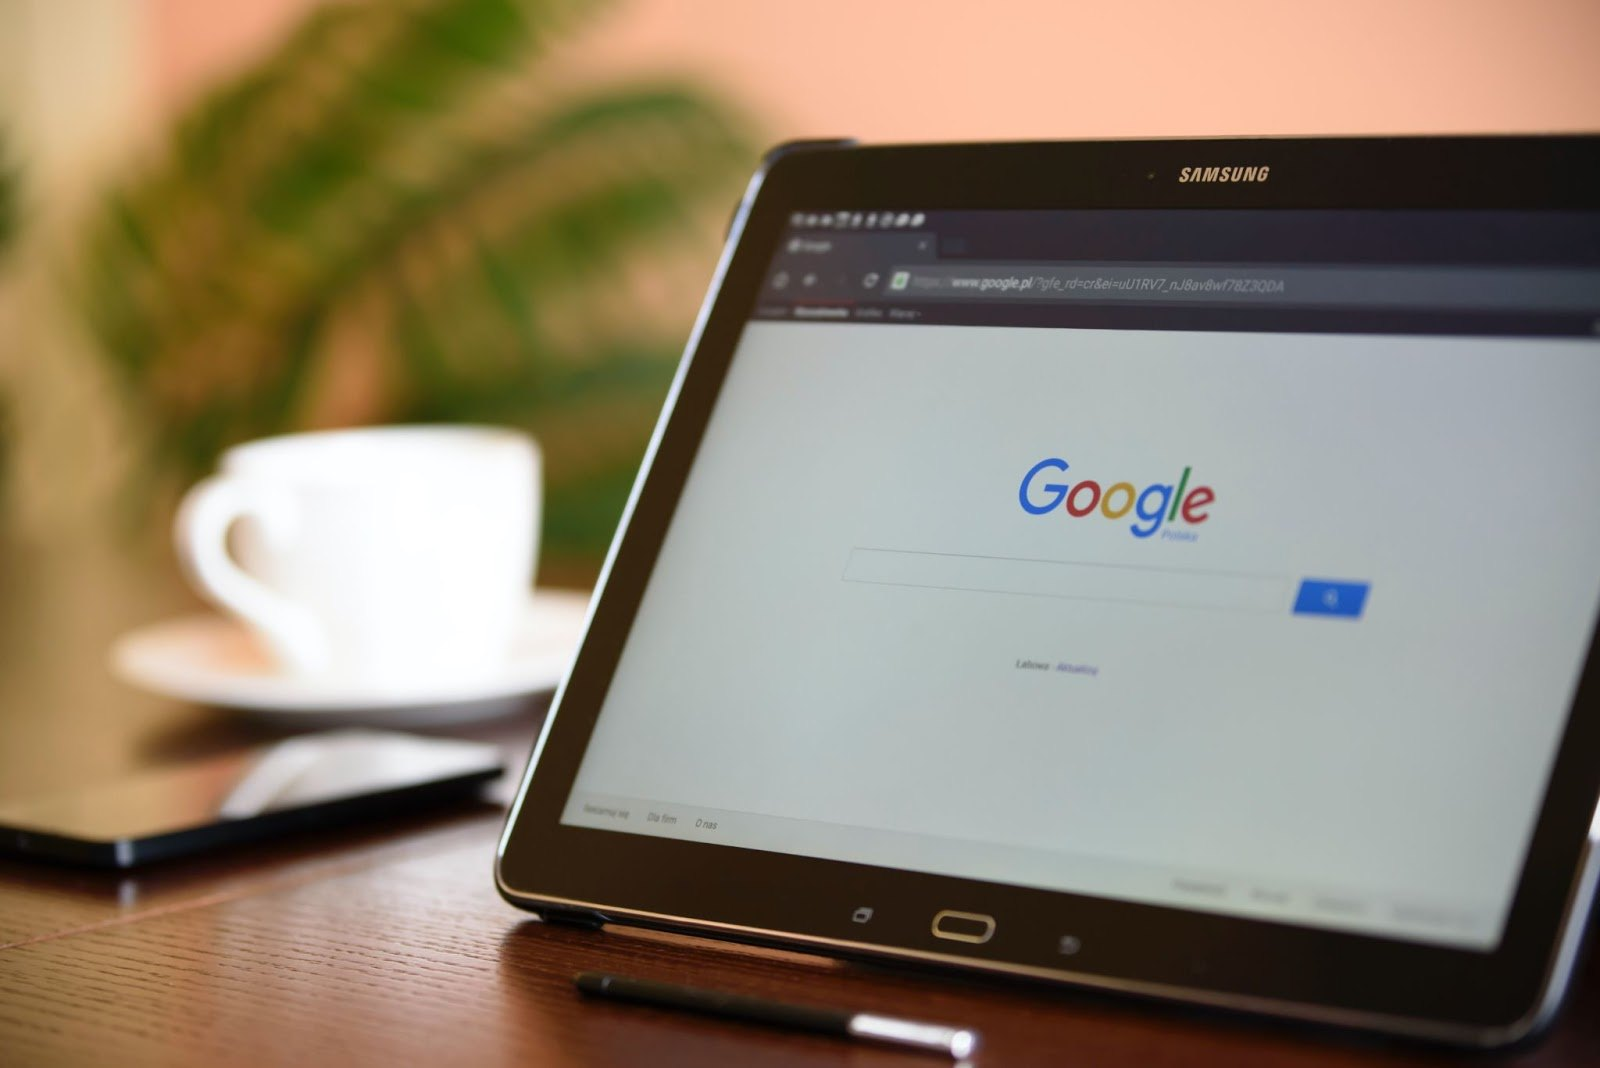 The Most Popular Google Services and Their Apps